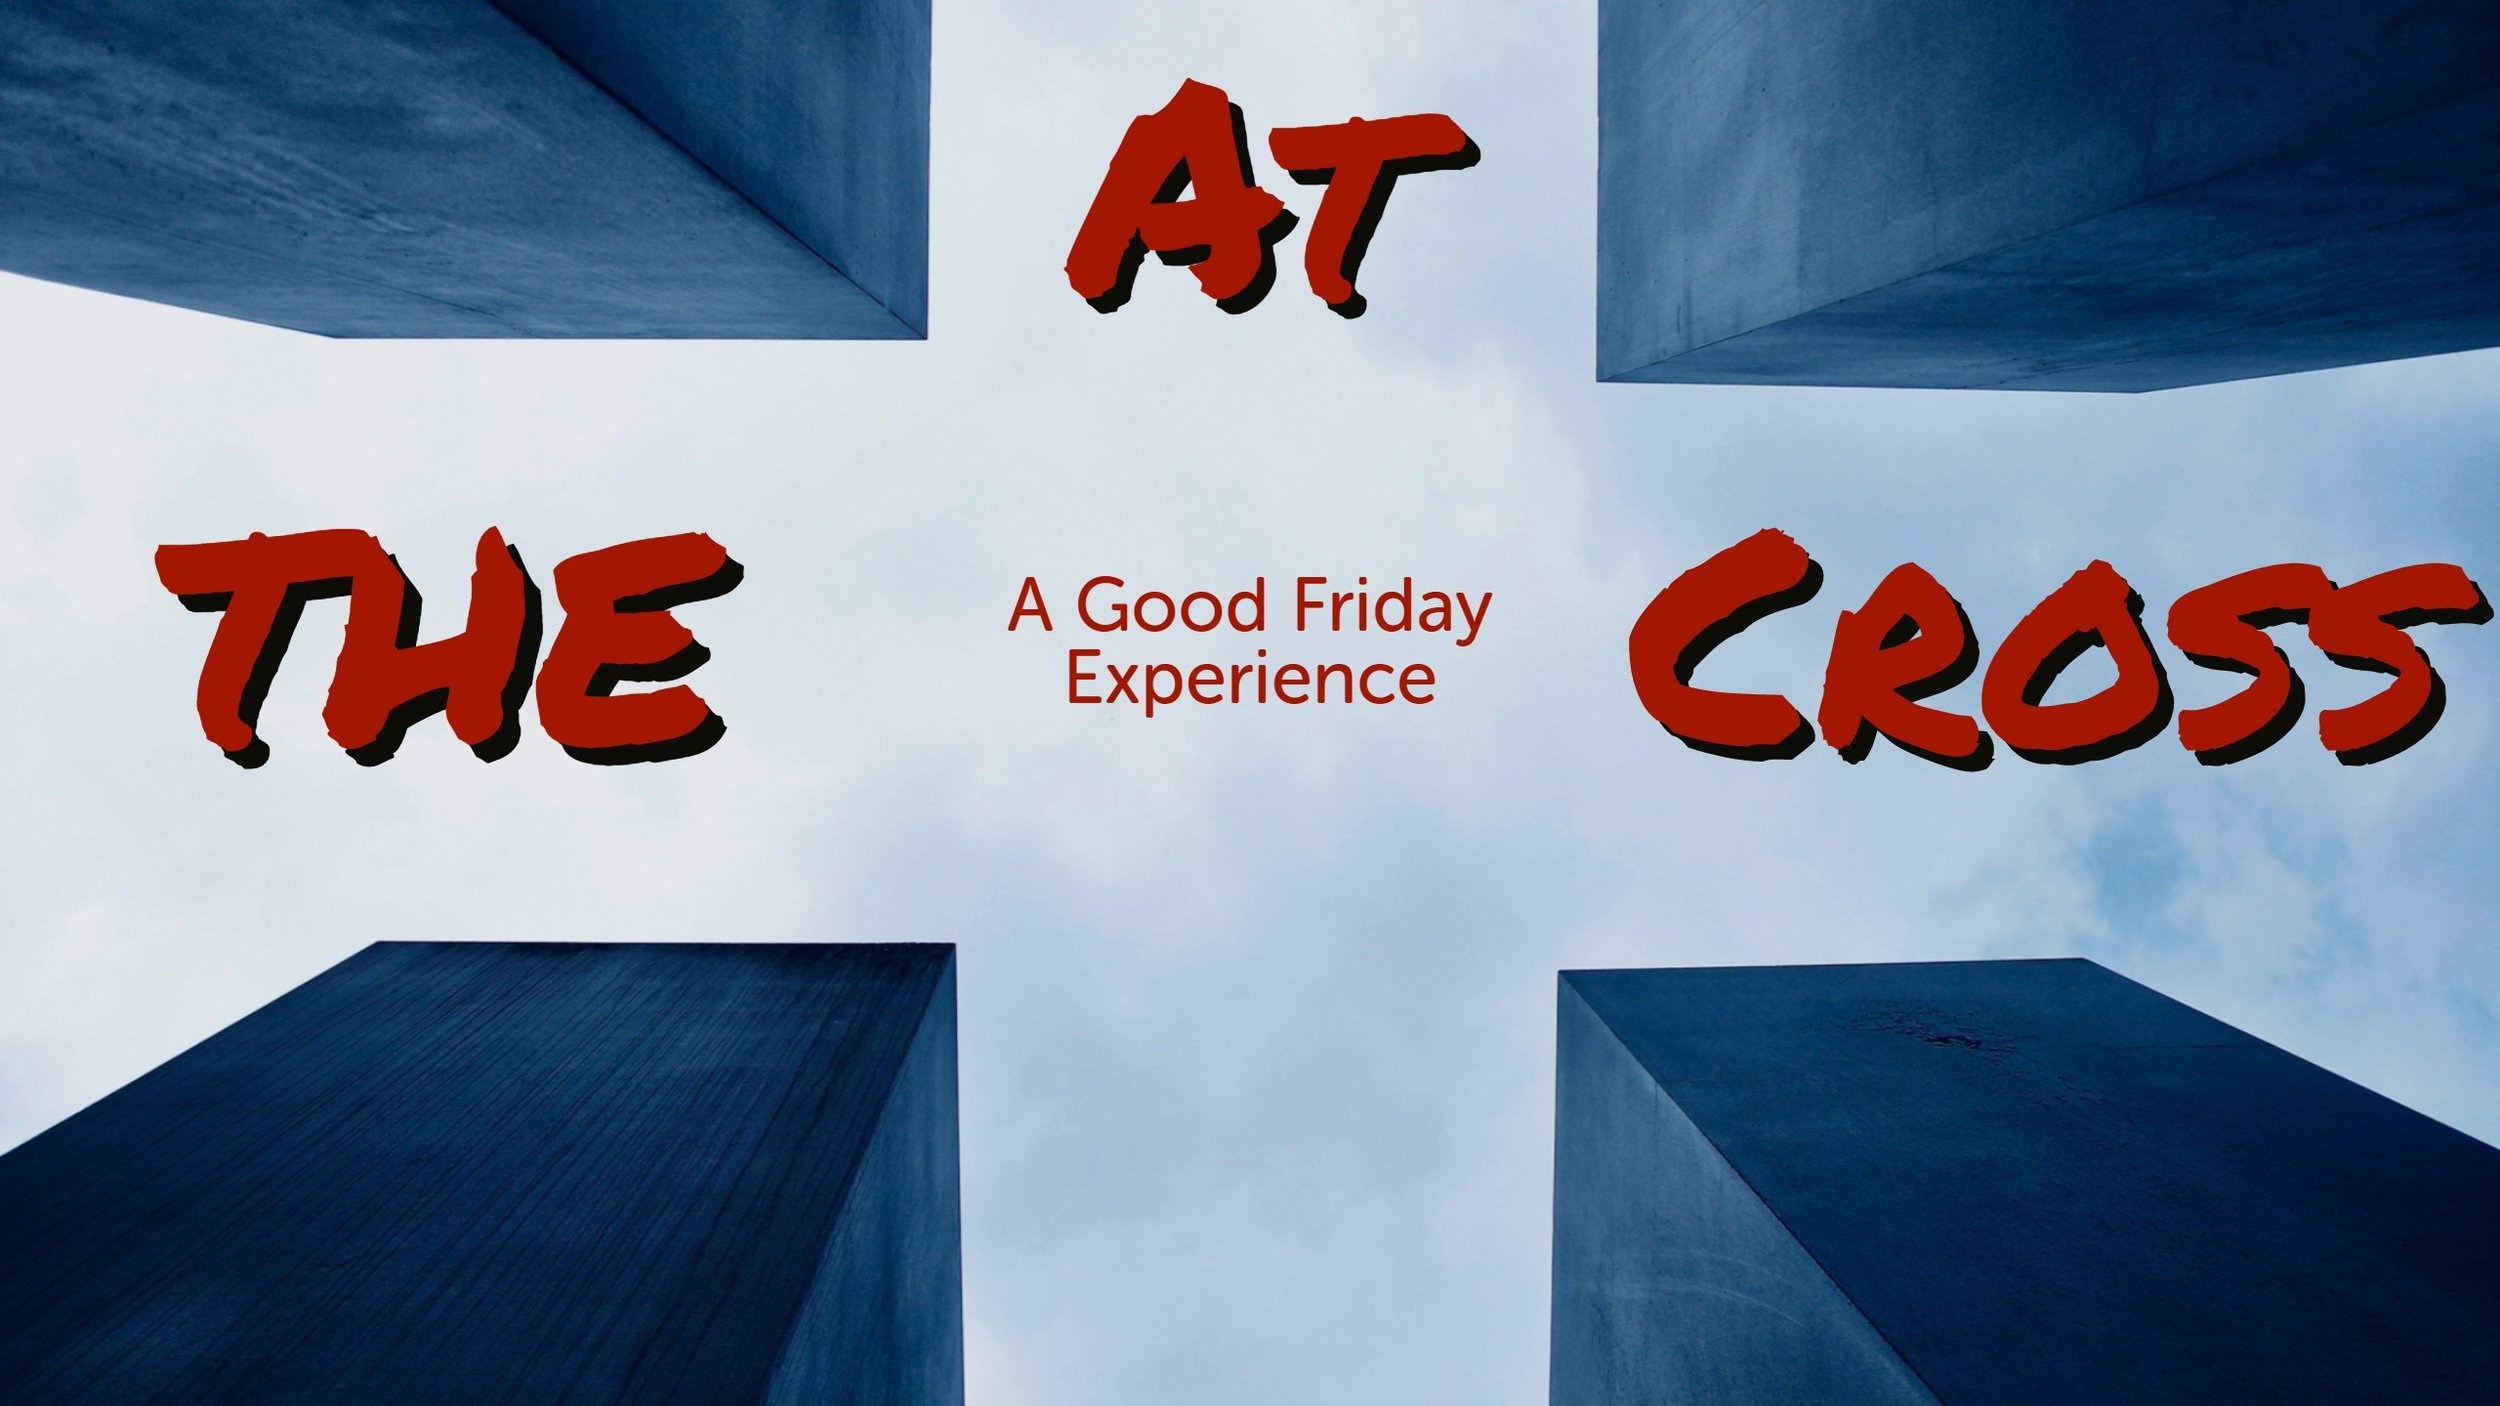 Good Friday Service - March 30th @ 6 p.m.